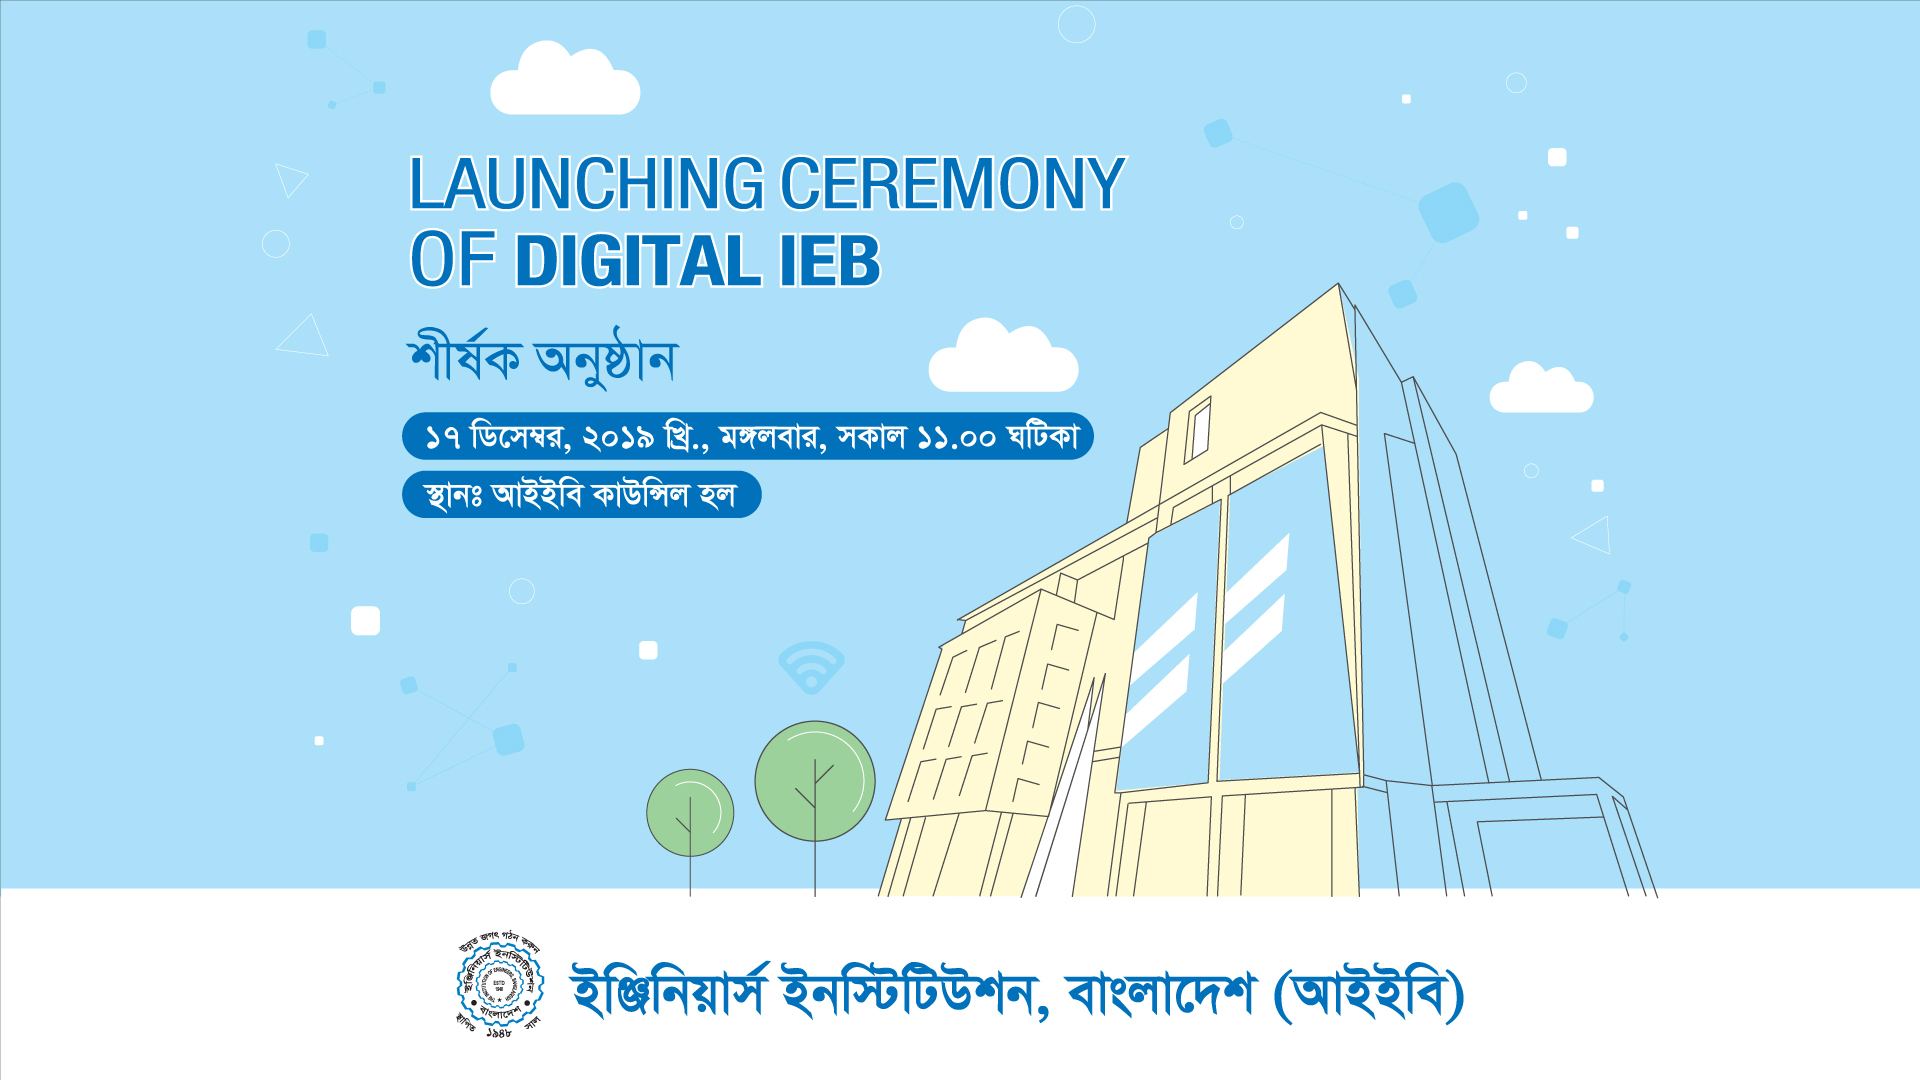 Launching Ceremony of Digital IEB